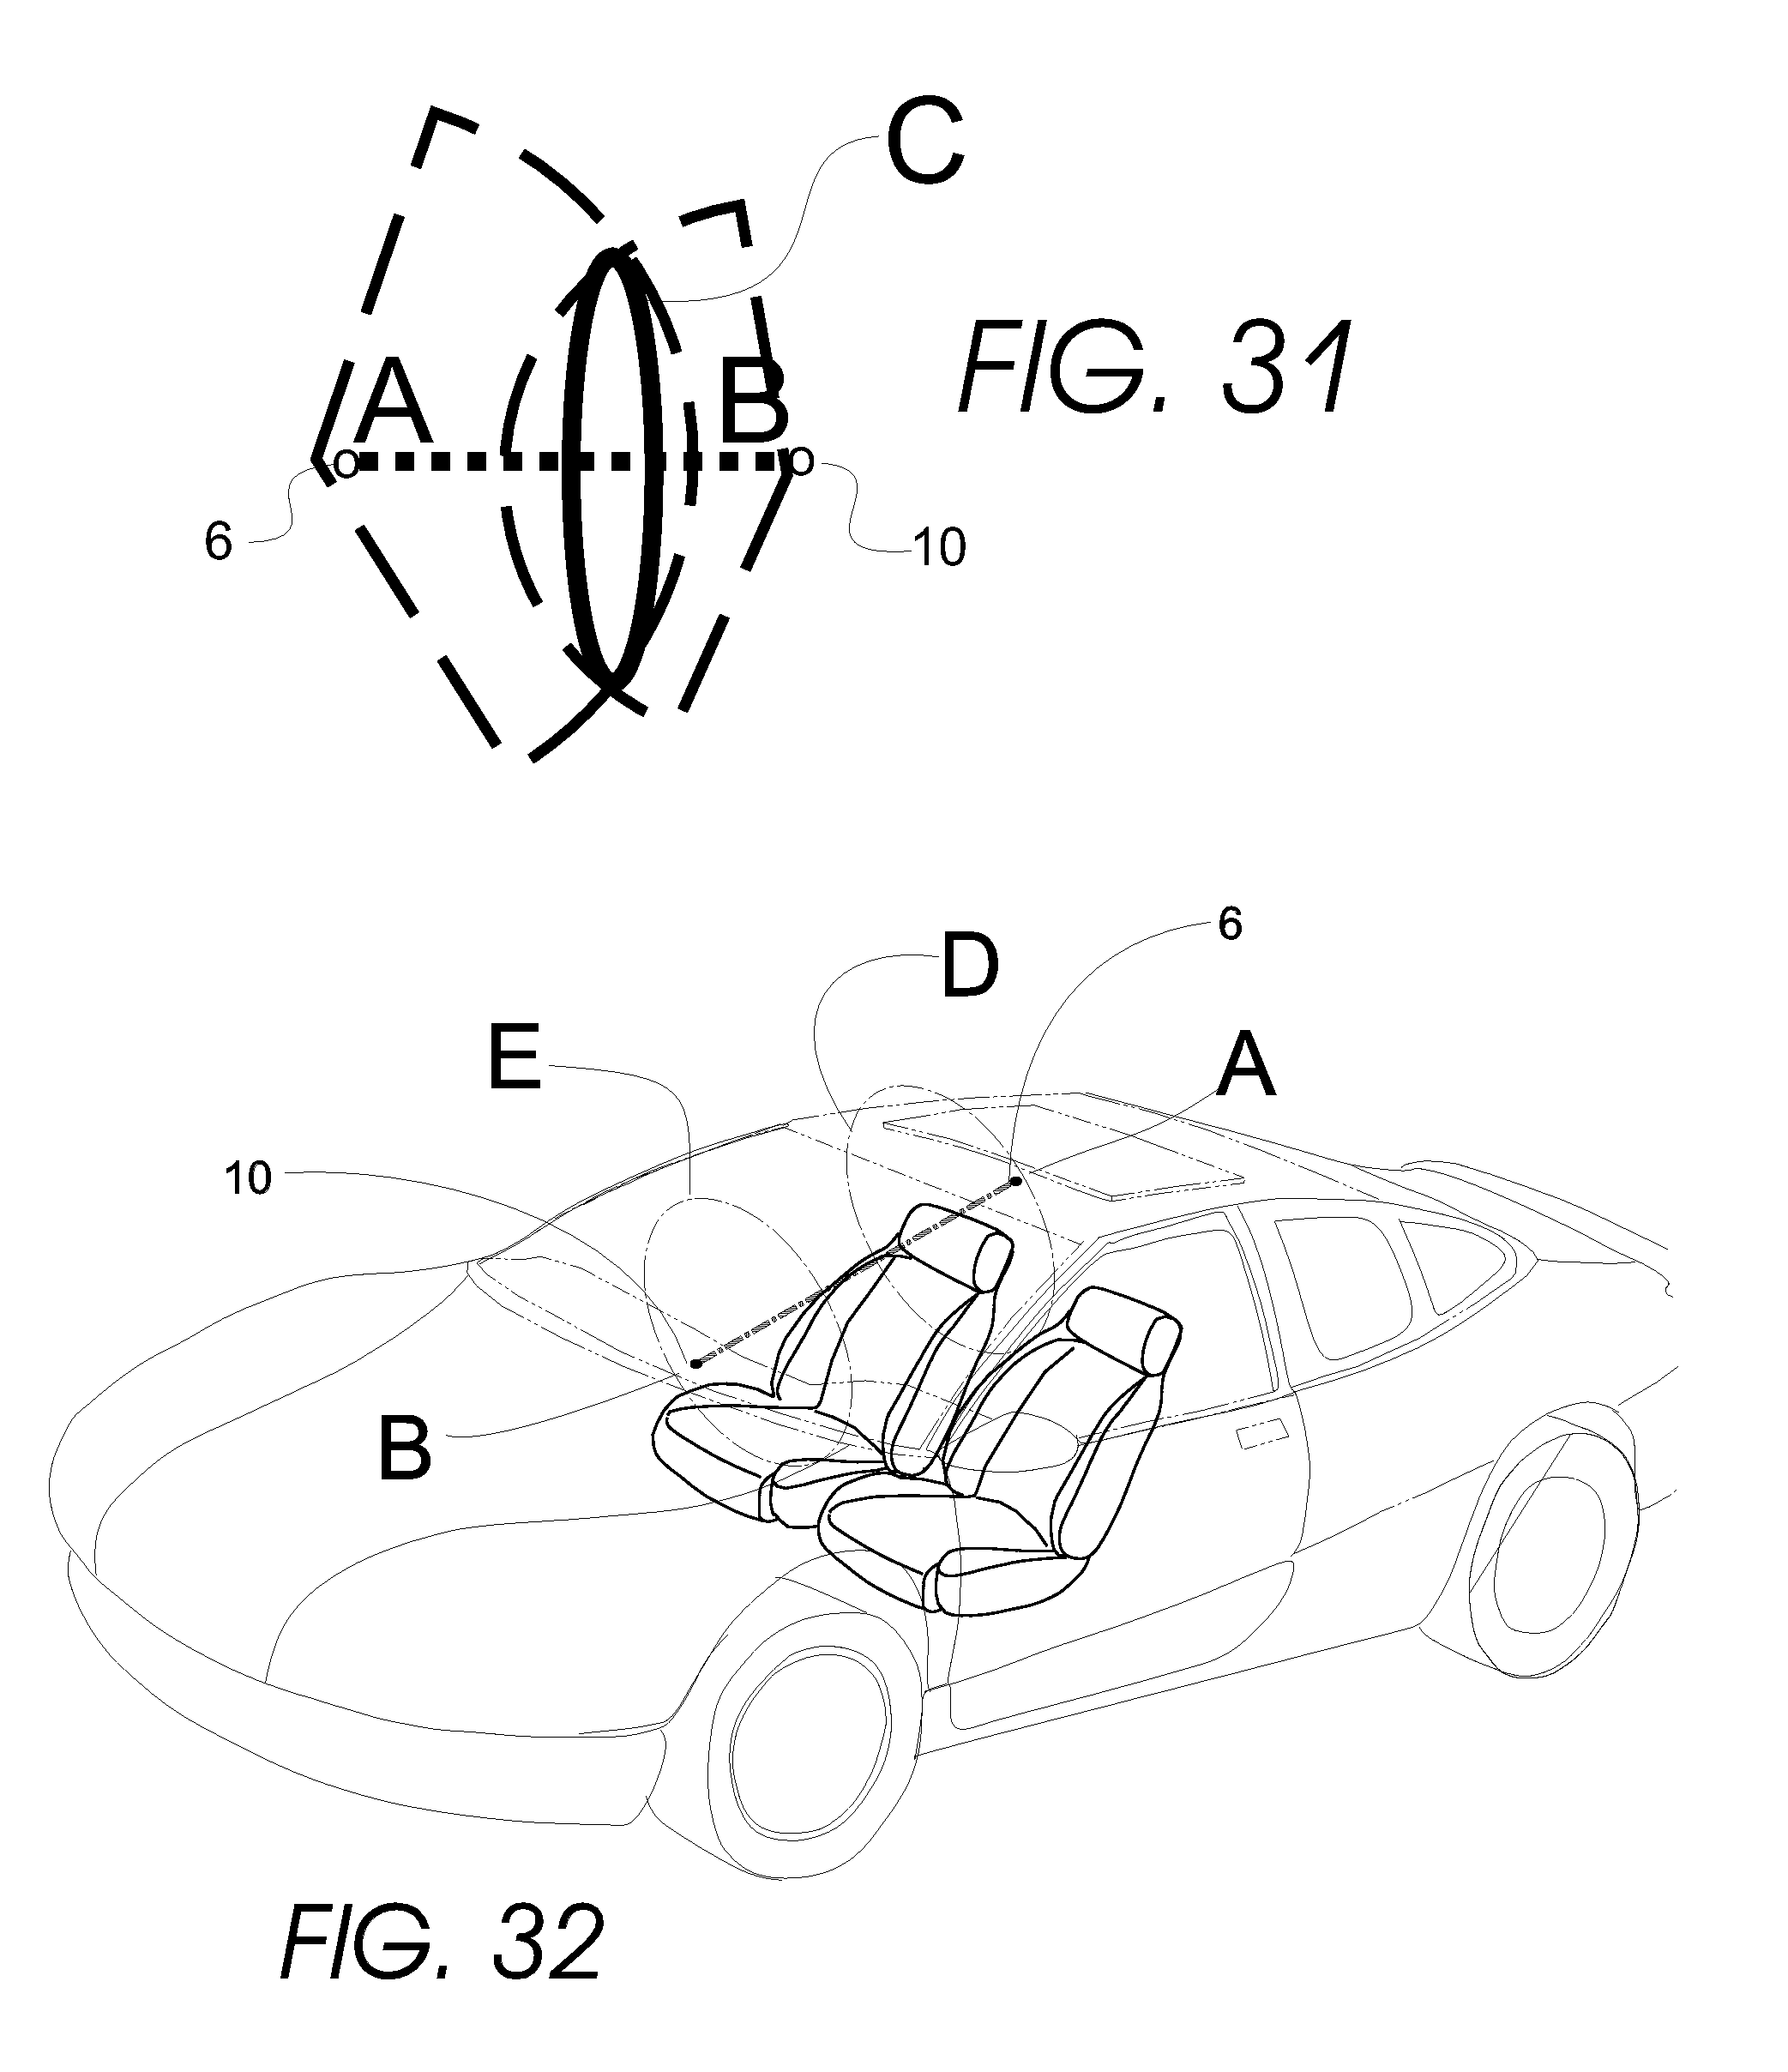 Patent Us 7660437 B2 Basic Network Setup Diagram From Tiger Direct Images